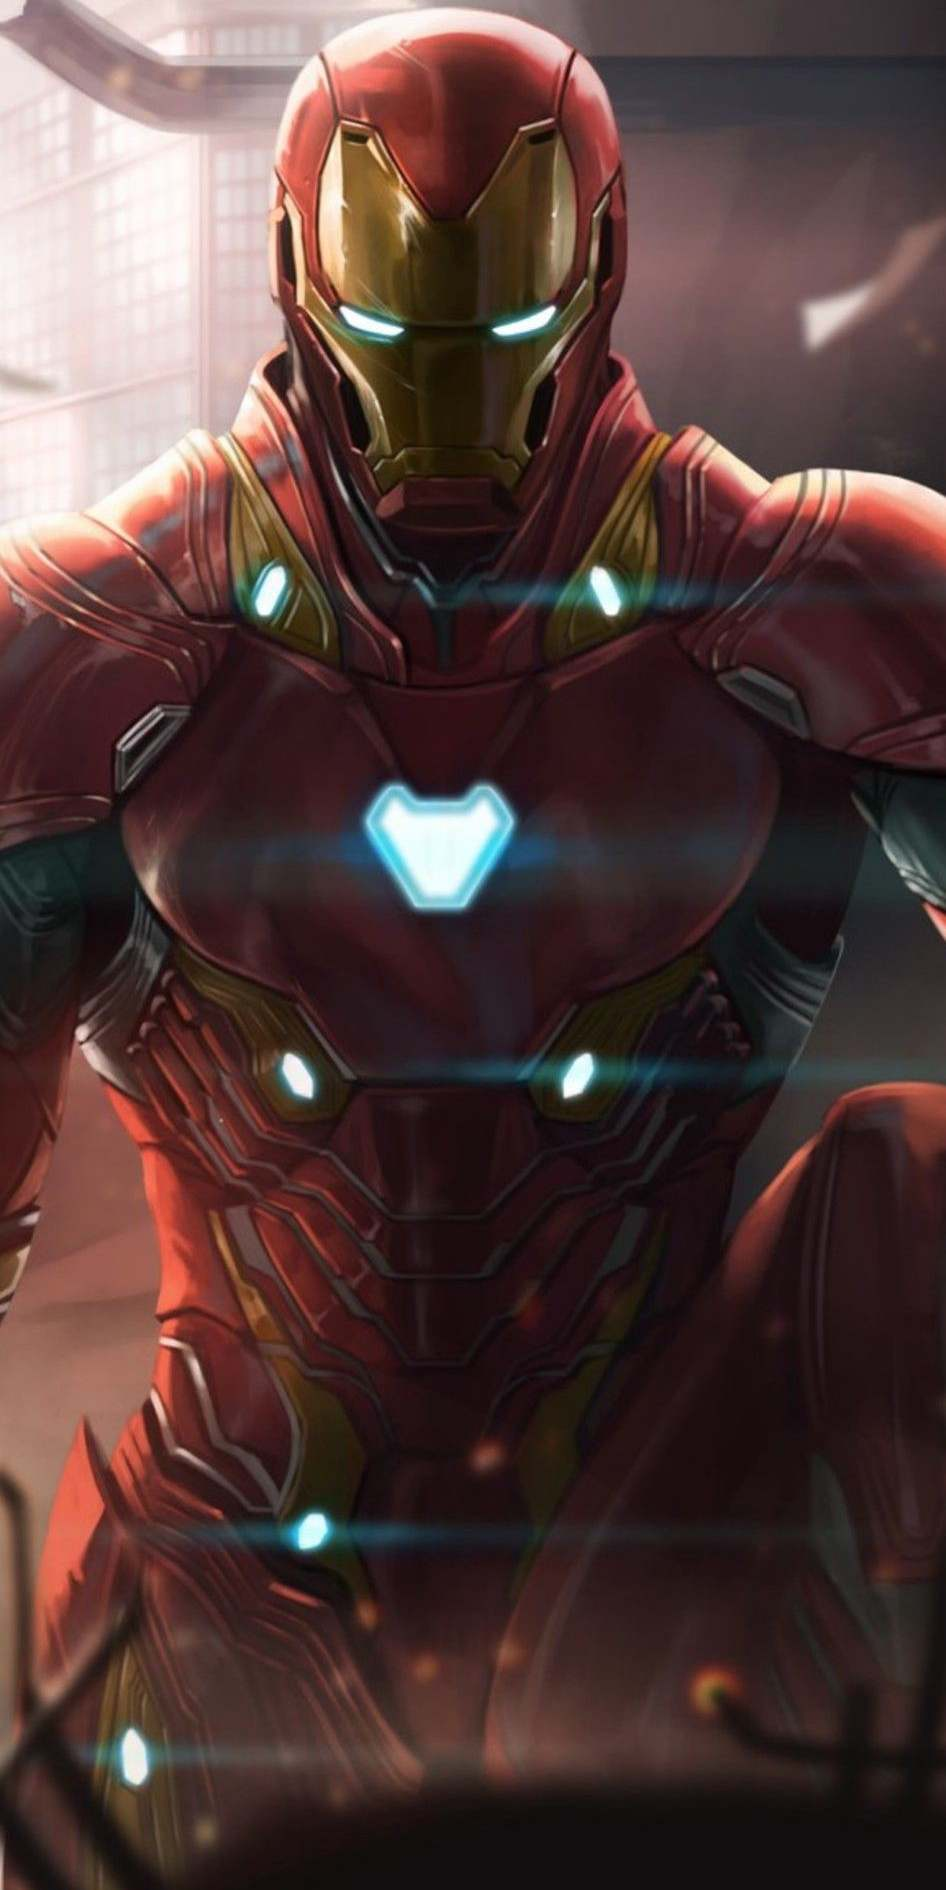 Game Quotes Wallpaper Iron Man Mark Suit Art Iphone Wallpaper Iphone Wallpapers